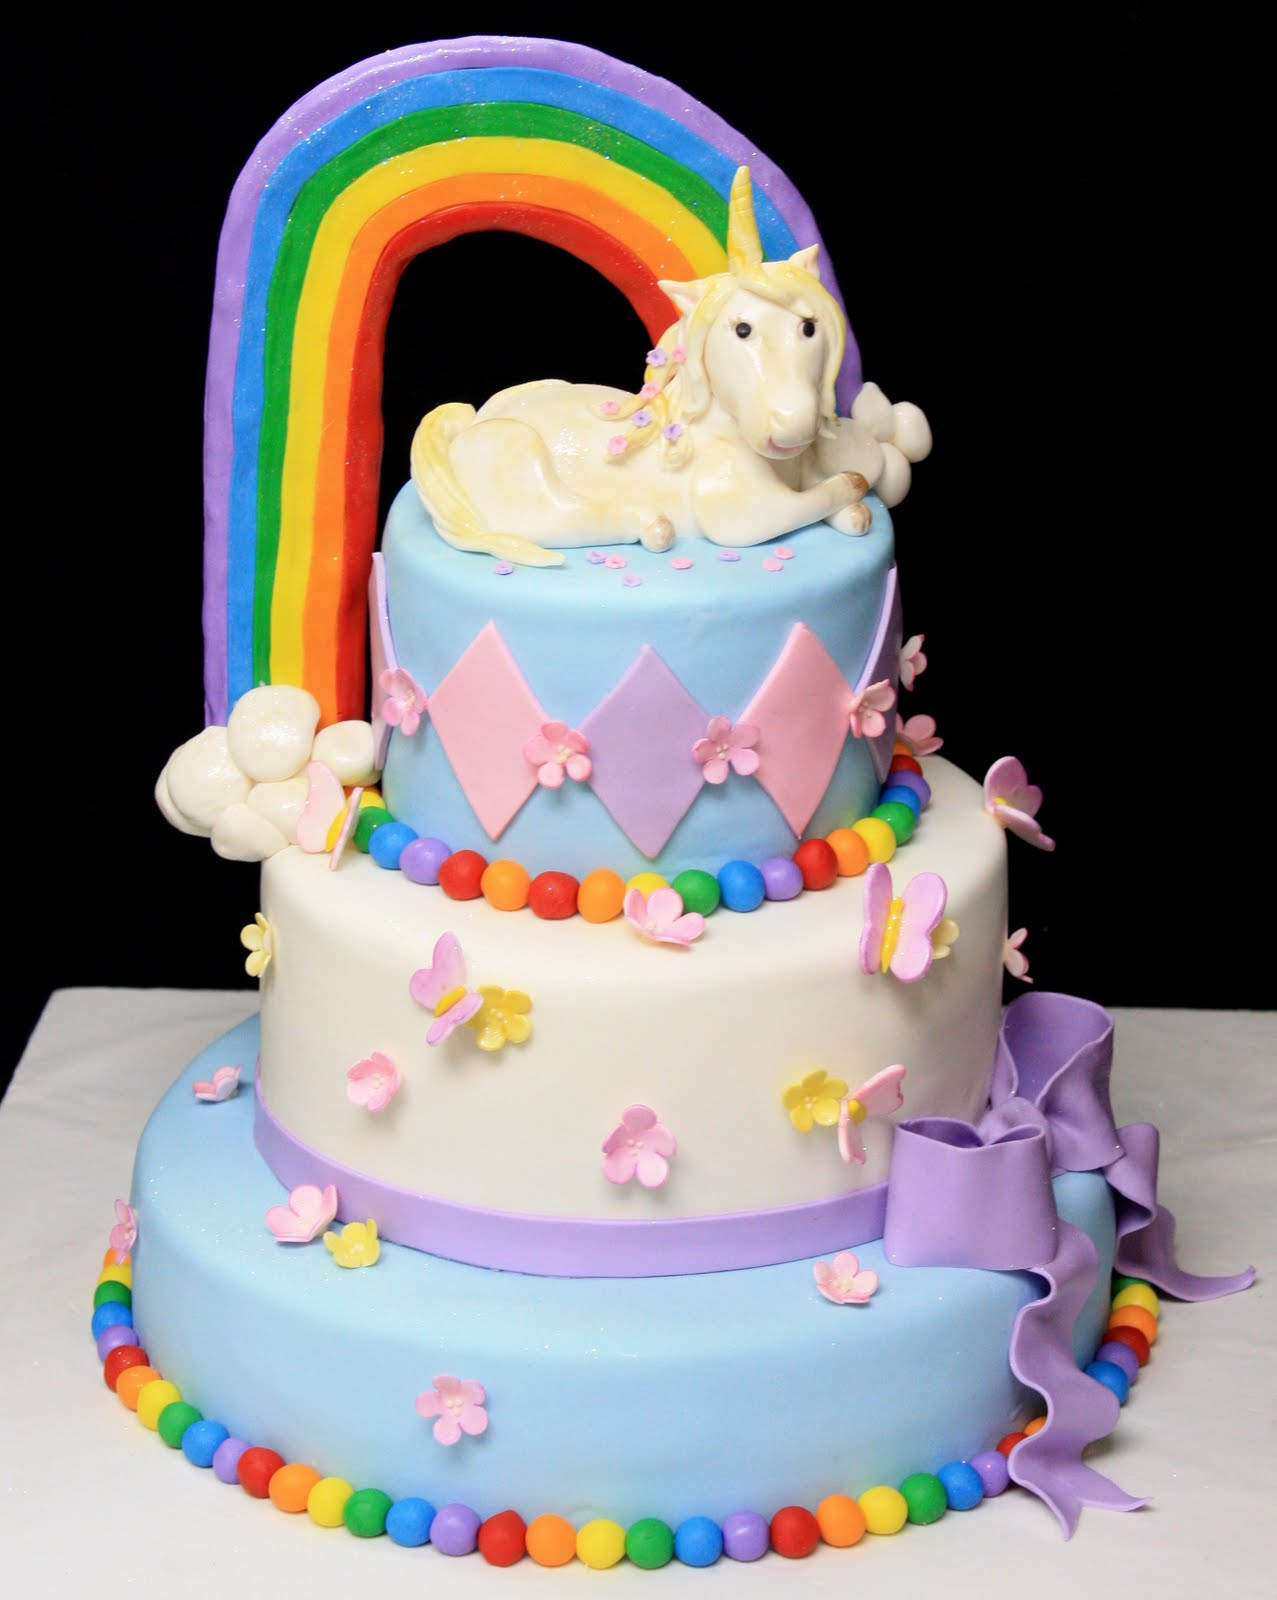 Gallery For gt How To Make A Unicorn Birthday Cake